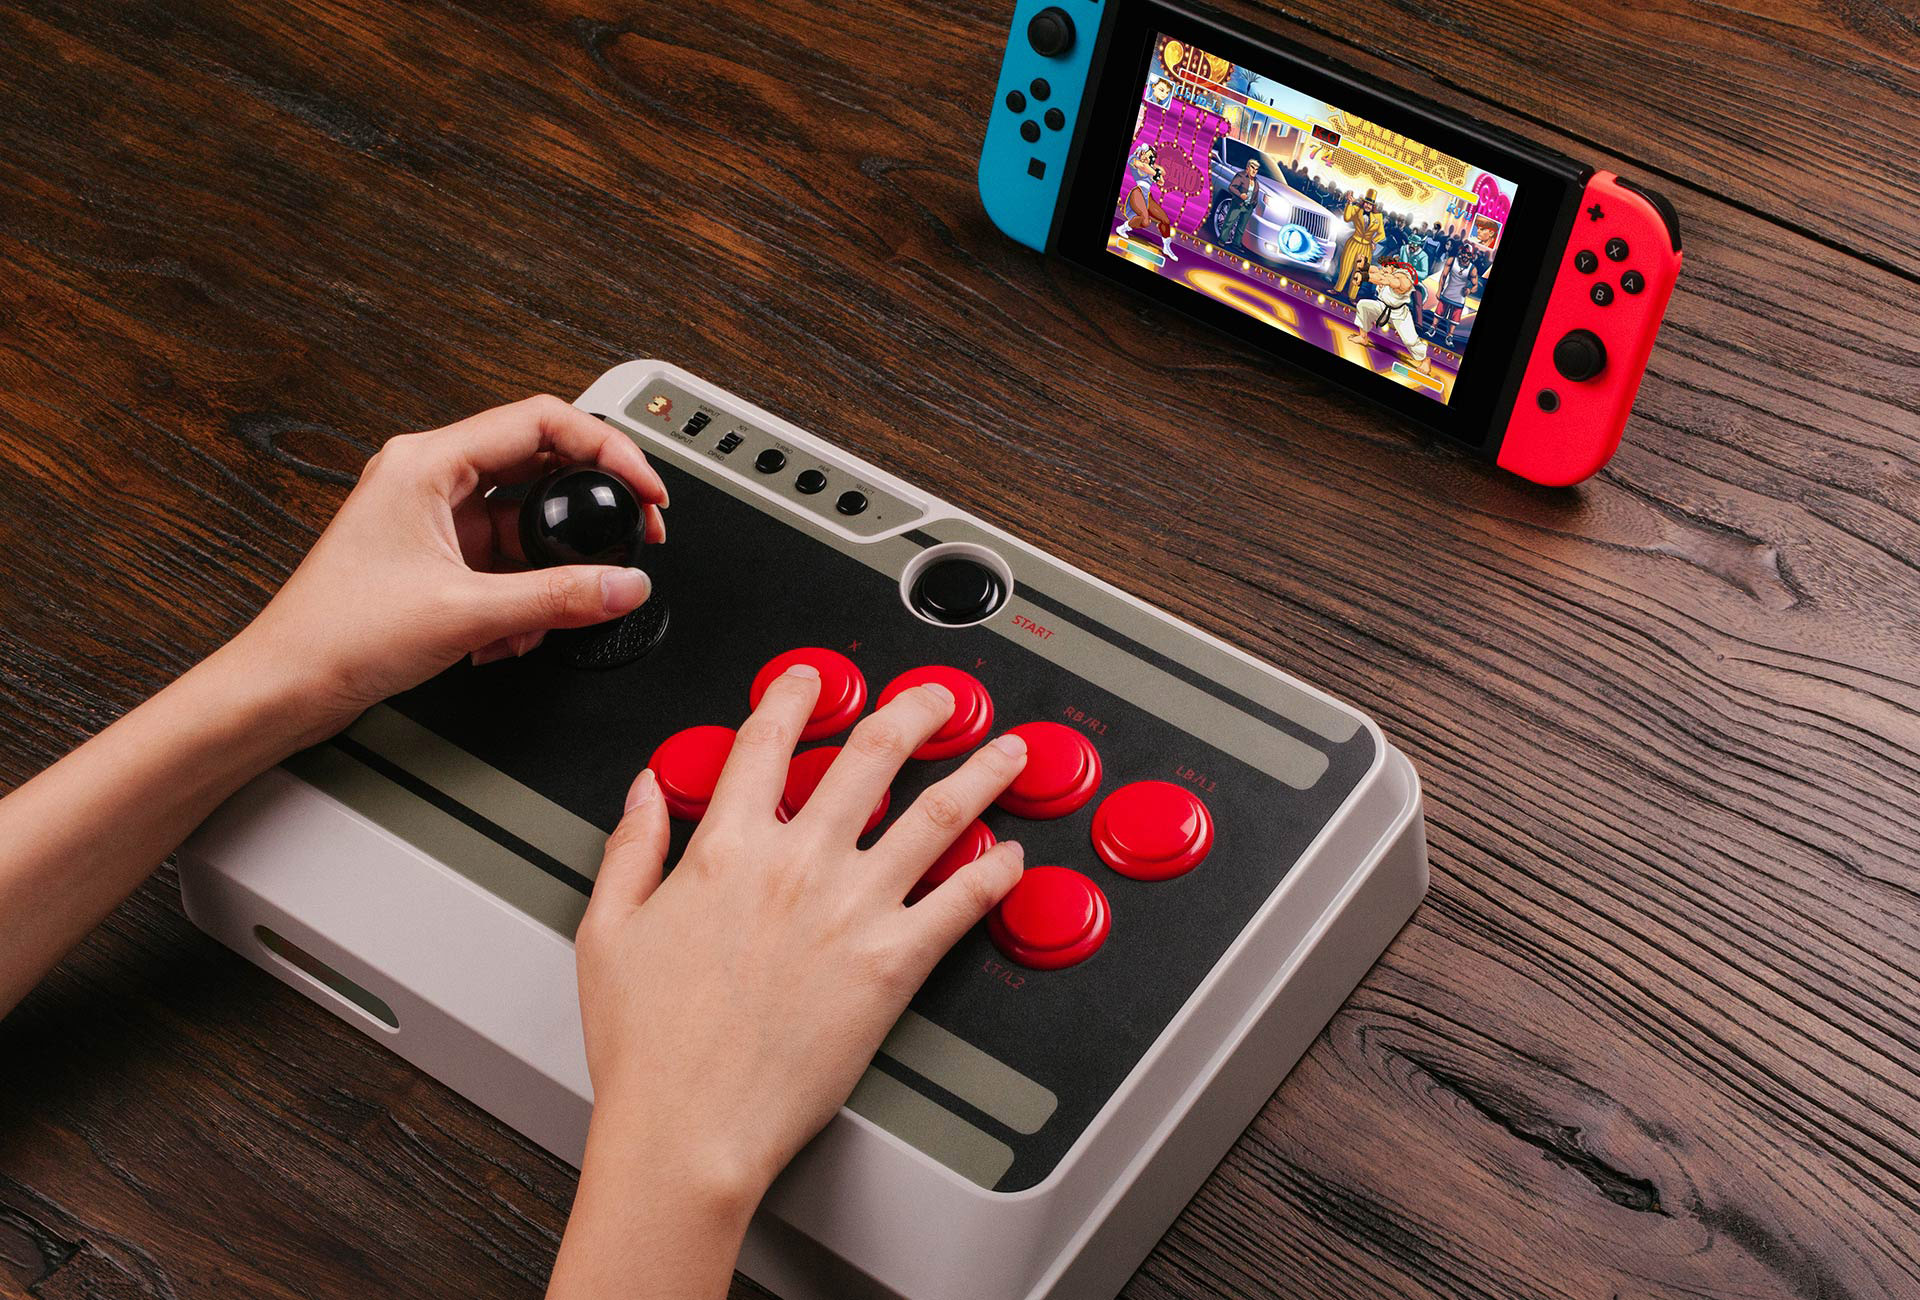 8Bitdo NES30 Arcade Stick 1 out of 11 image gallery